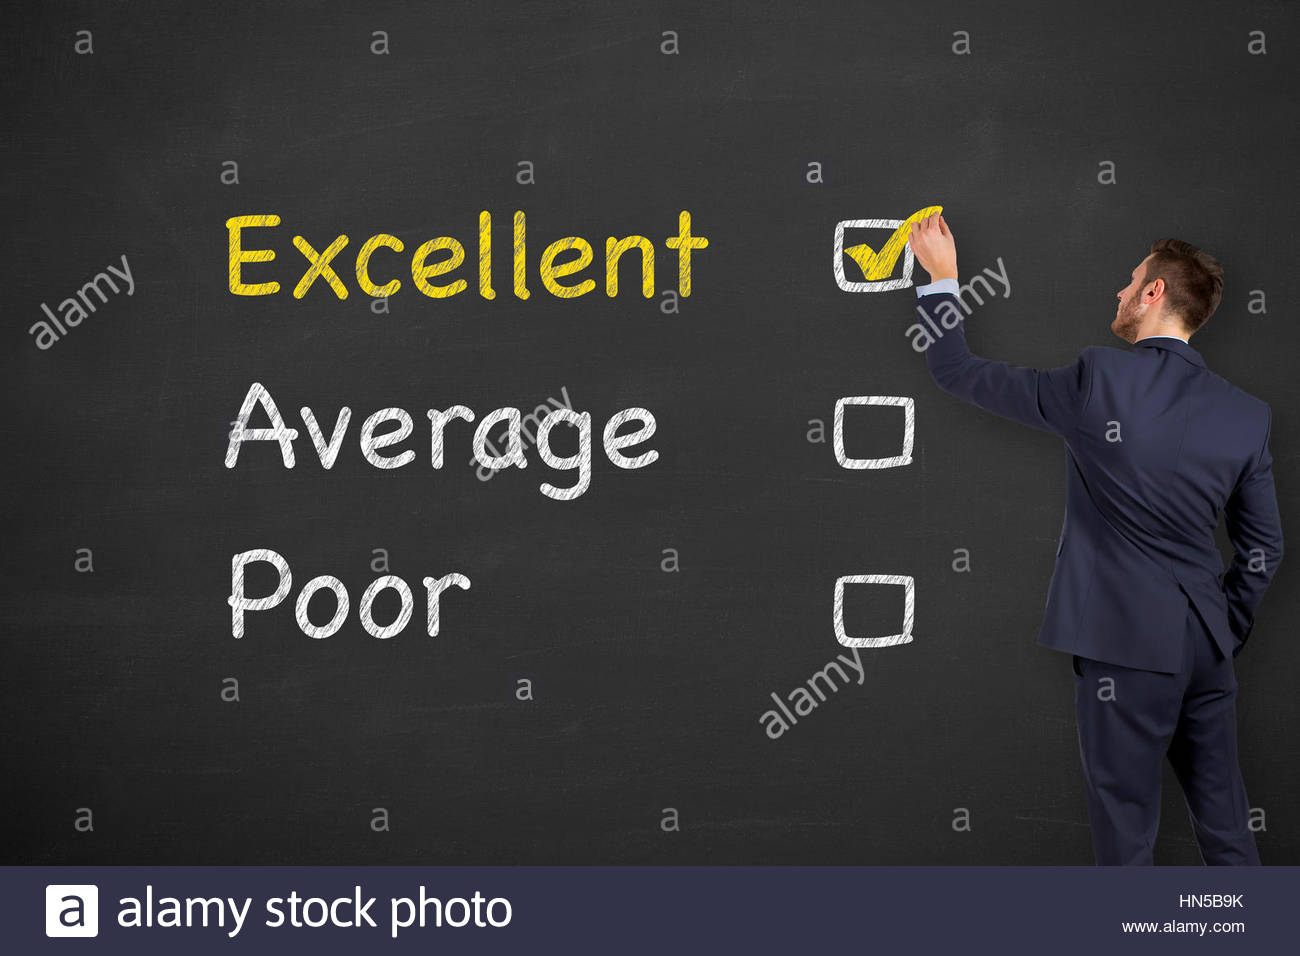 Customer Satisfaction Concepts on Chalkboard - Stock Image